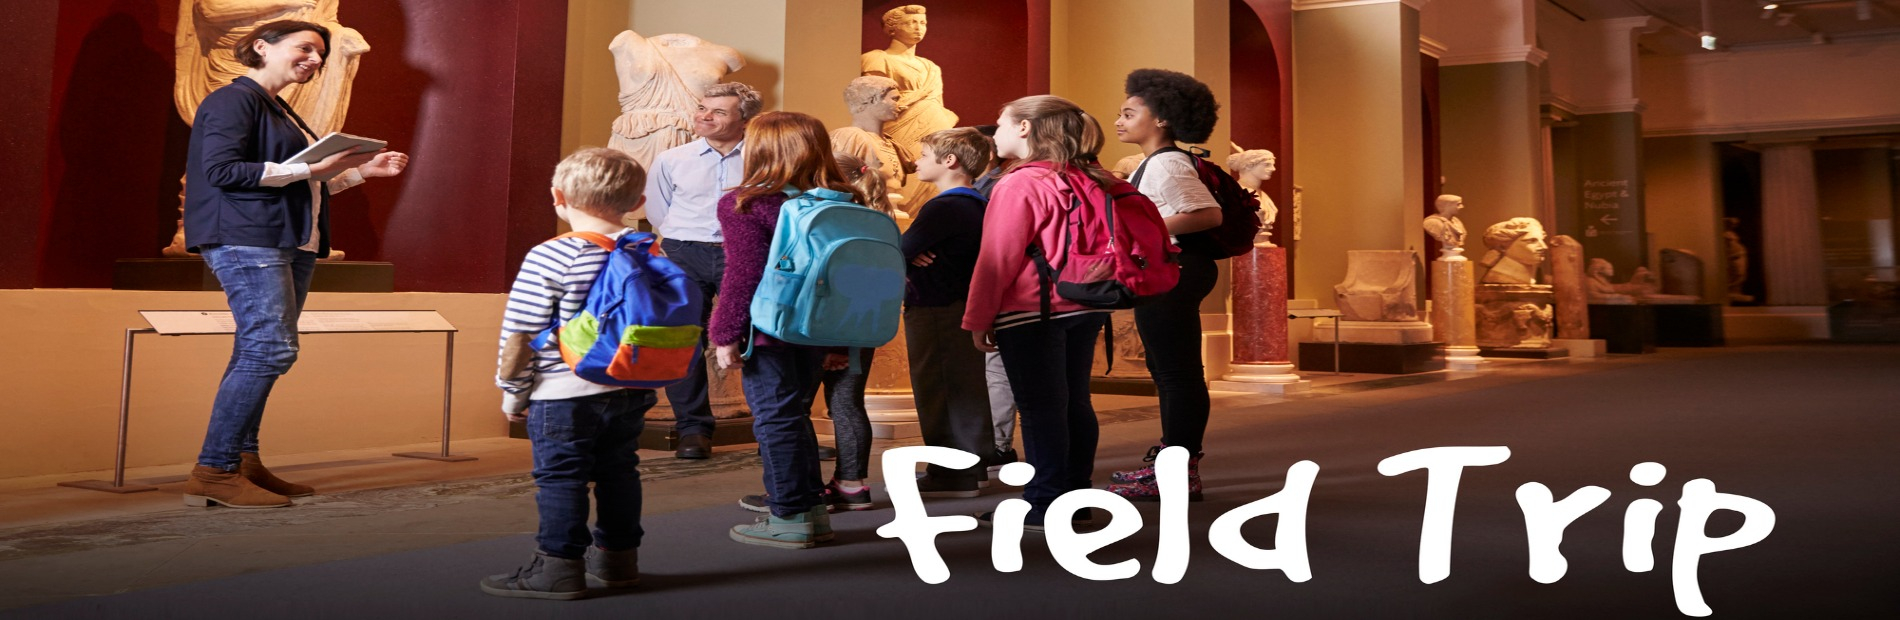 NJ Kids Field Trip Guide